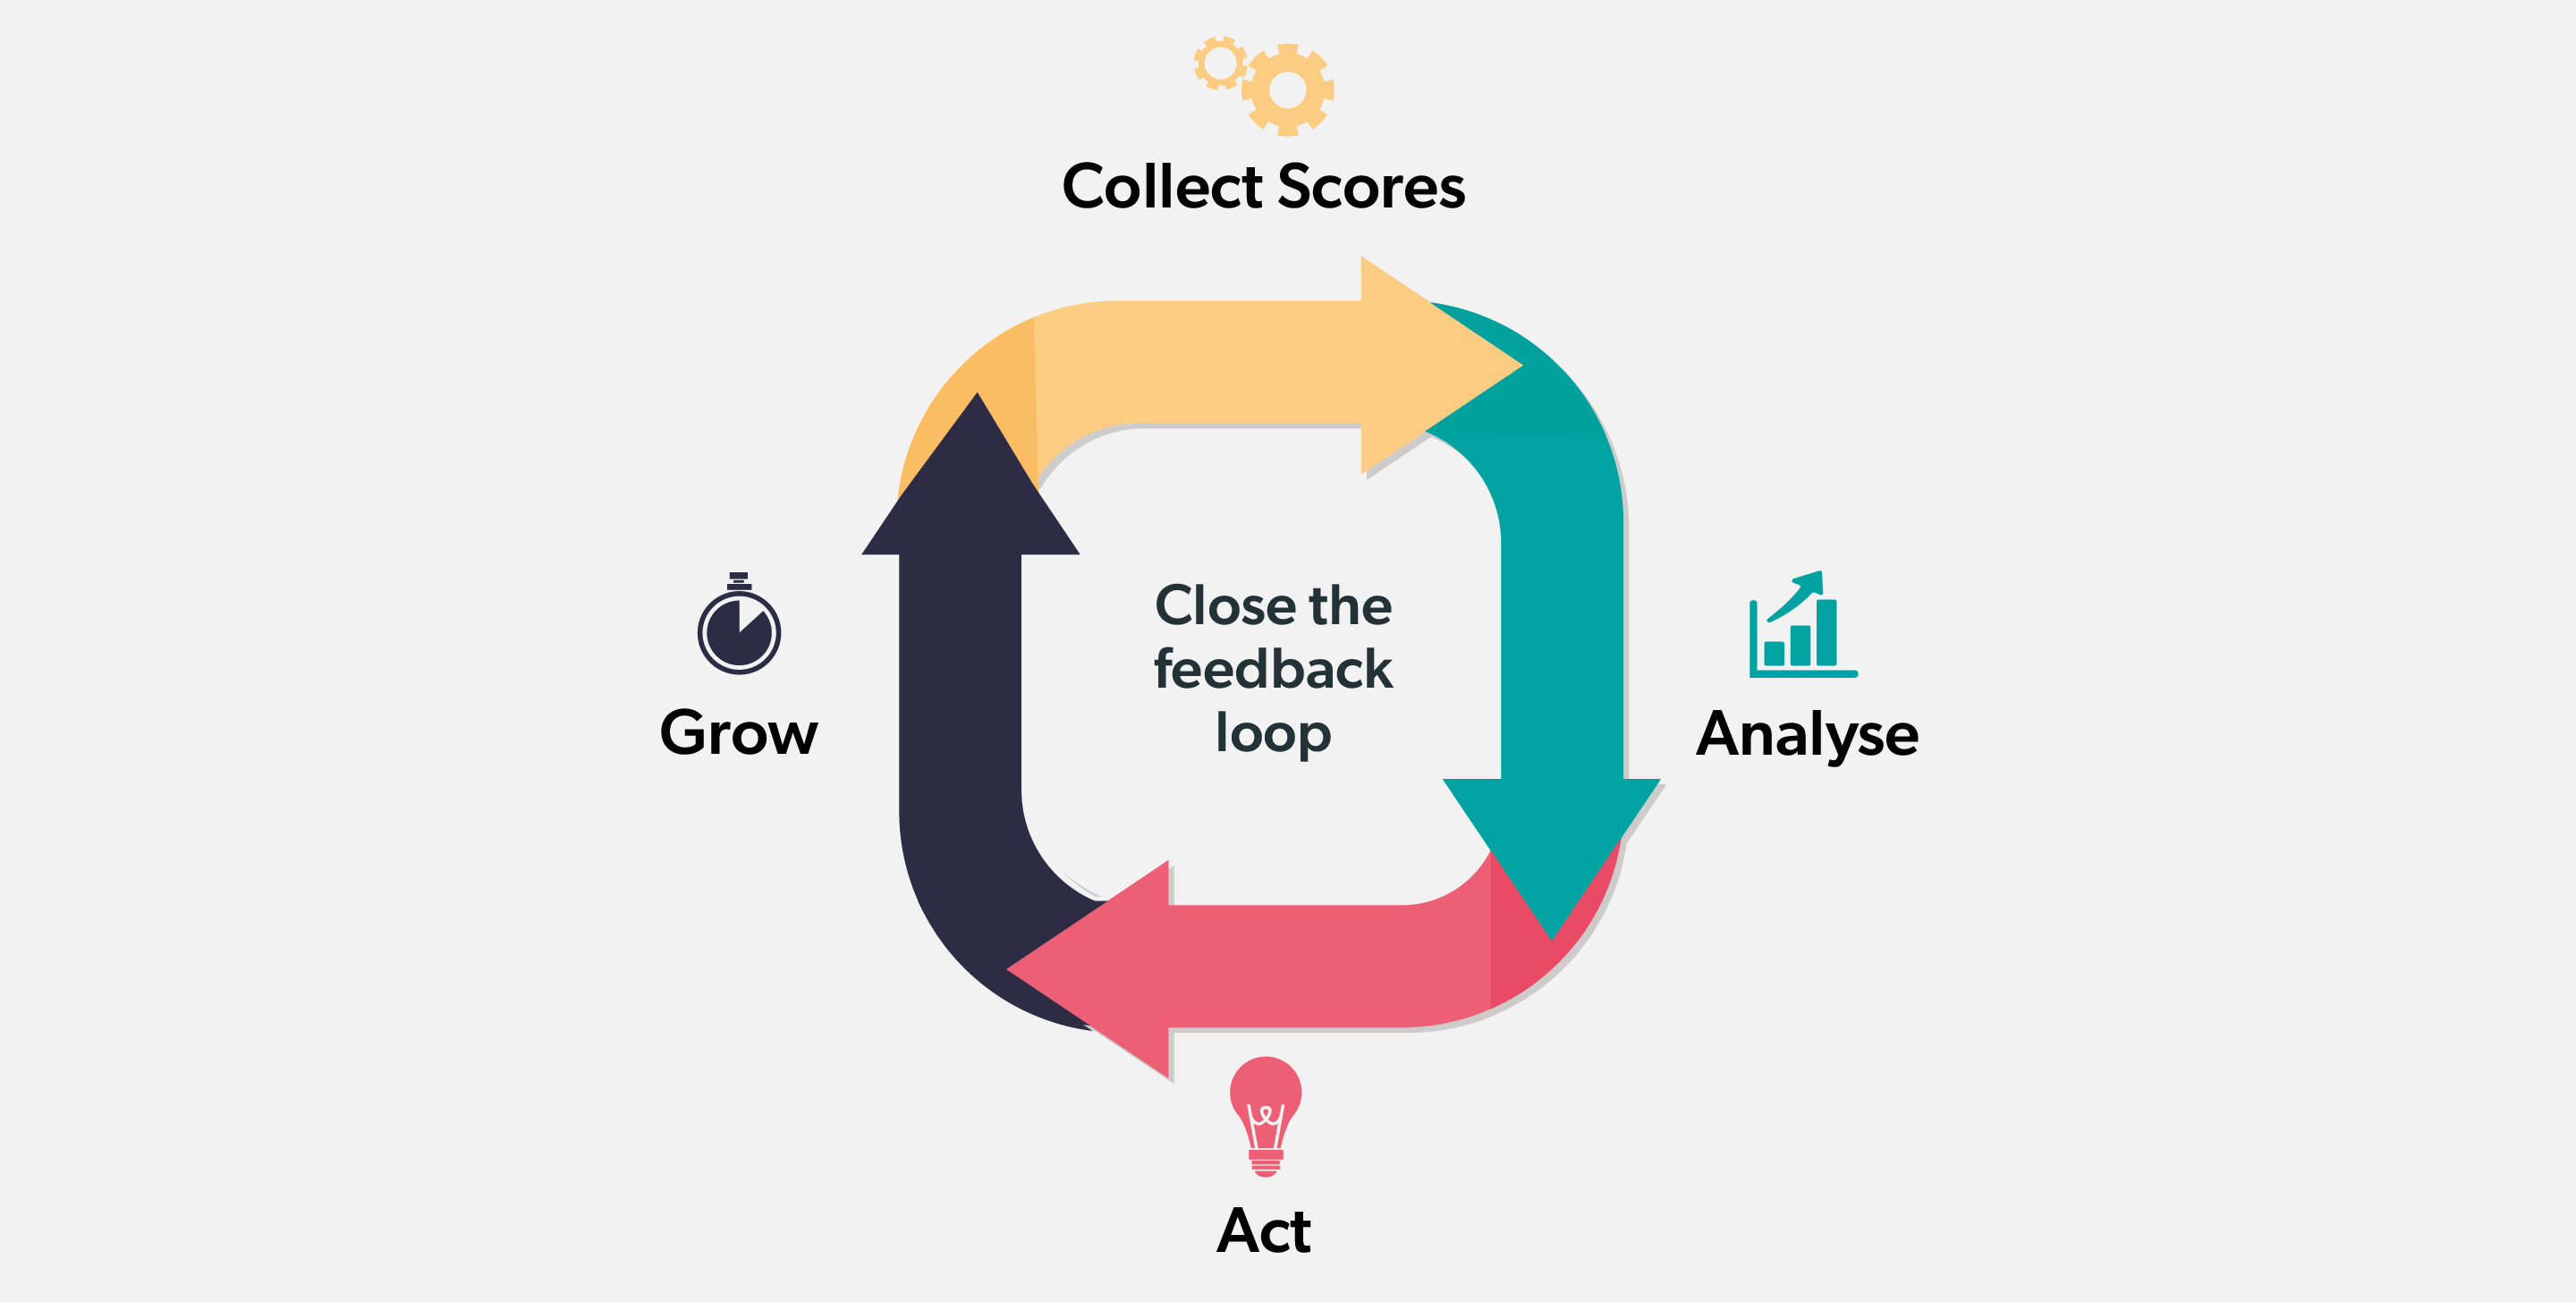 Closing the feedback Loop helps you attain your NPS score benchmark and improve continuously.